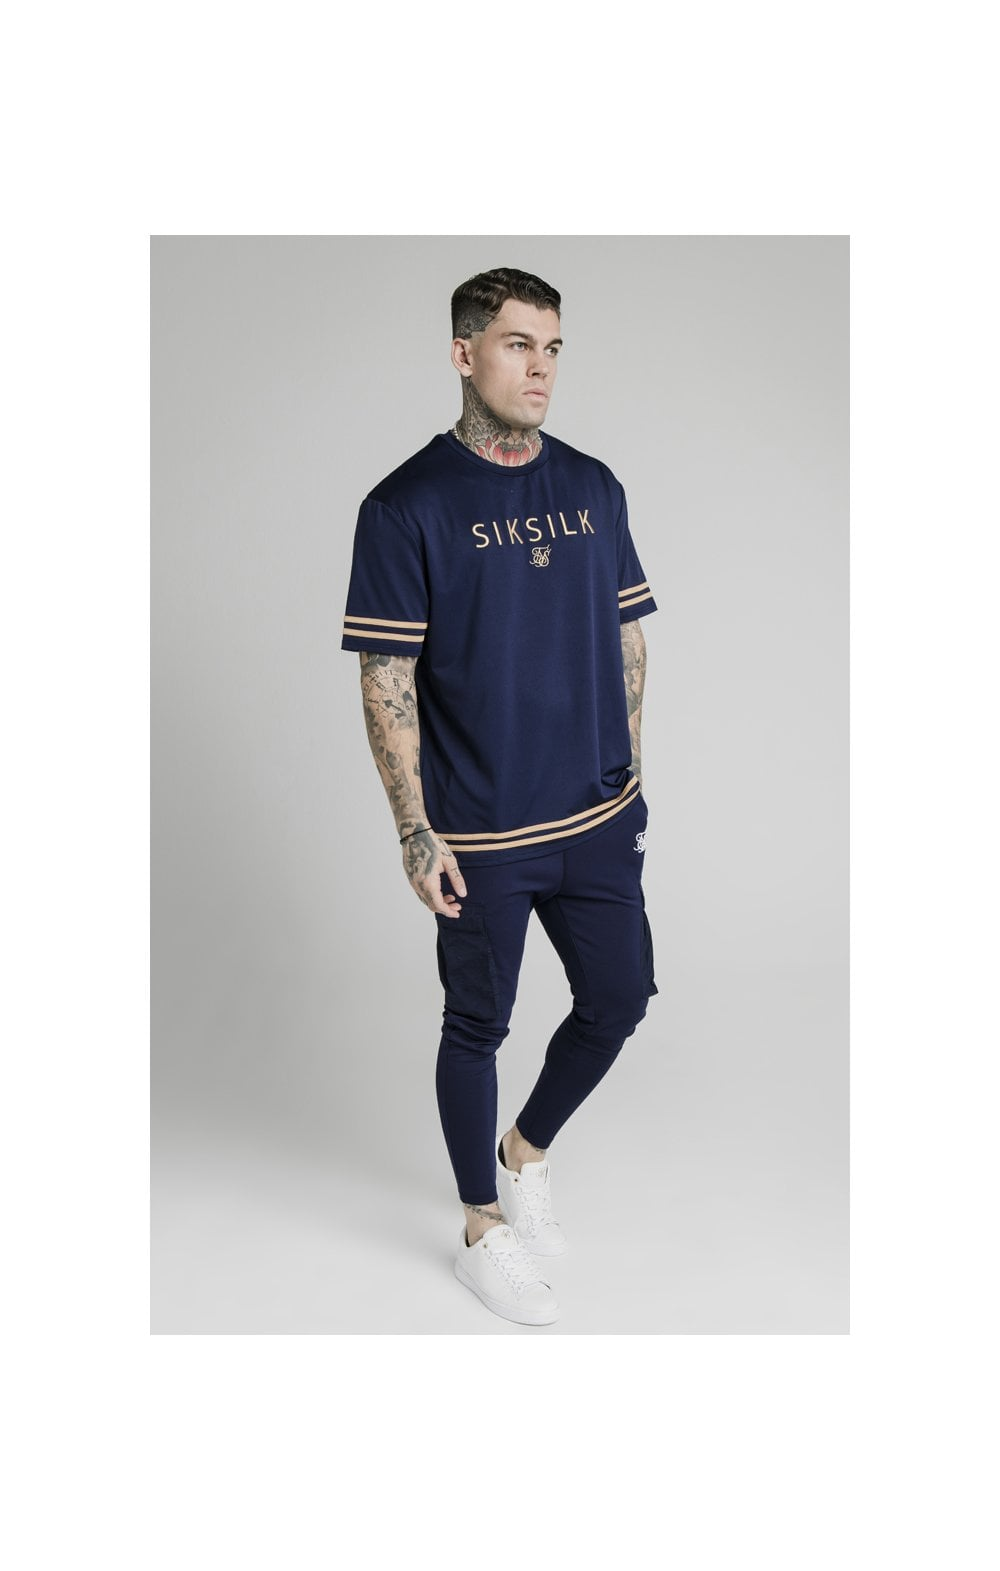 SikSilk S/S Essential Tee - Navy Eclipse (3)